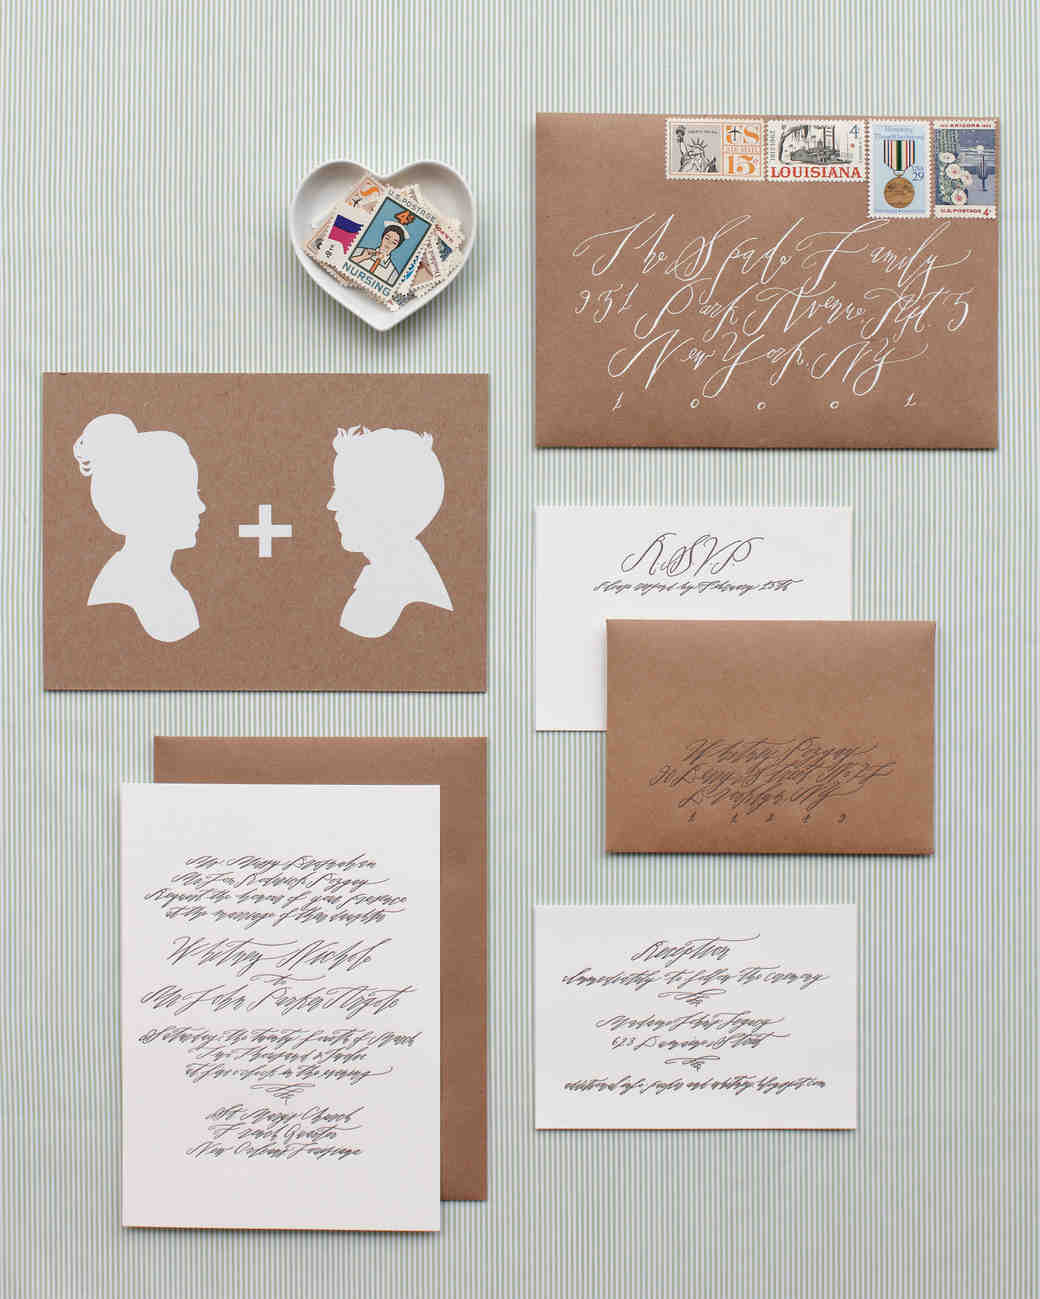 10 Things You Should Know Before Mailing Your Wedding Invitations – Cool Places to Send Wedding Invitations